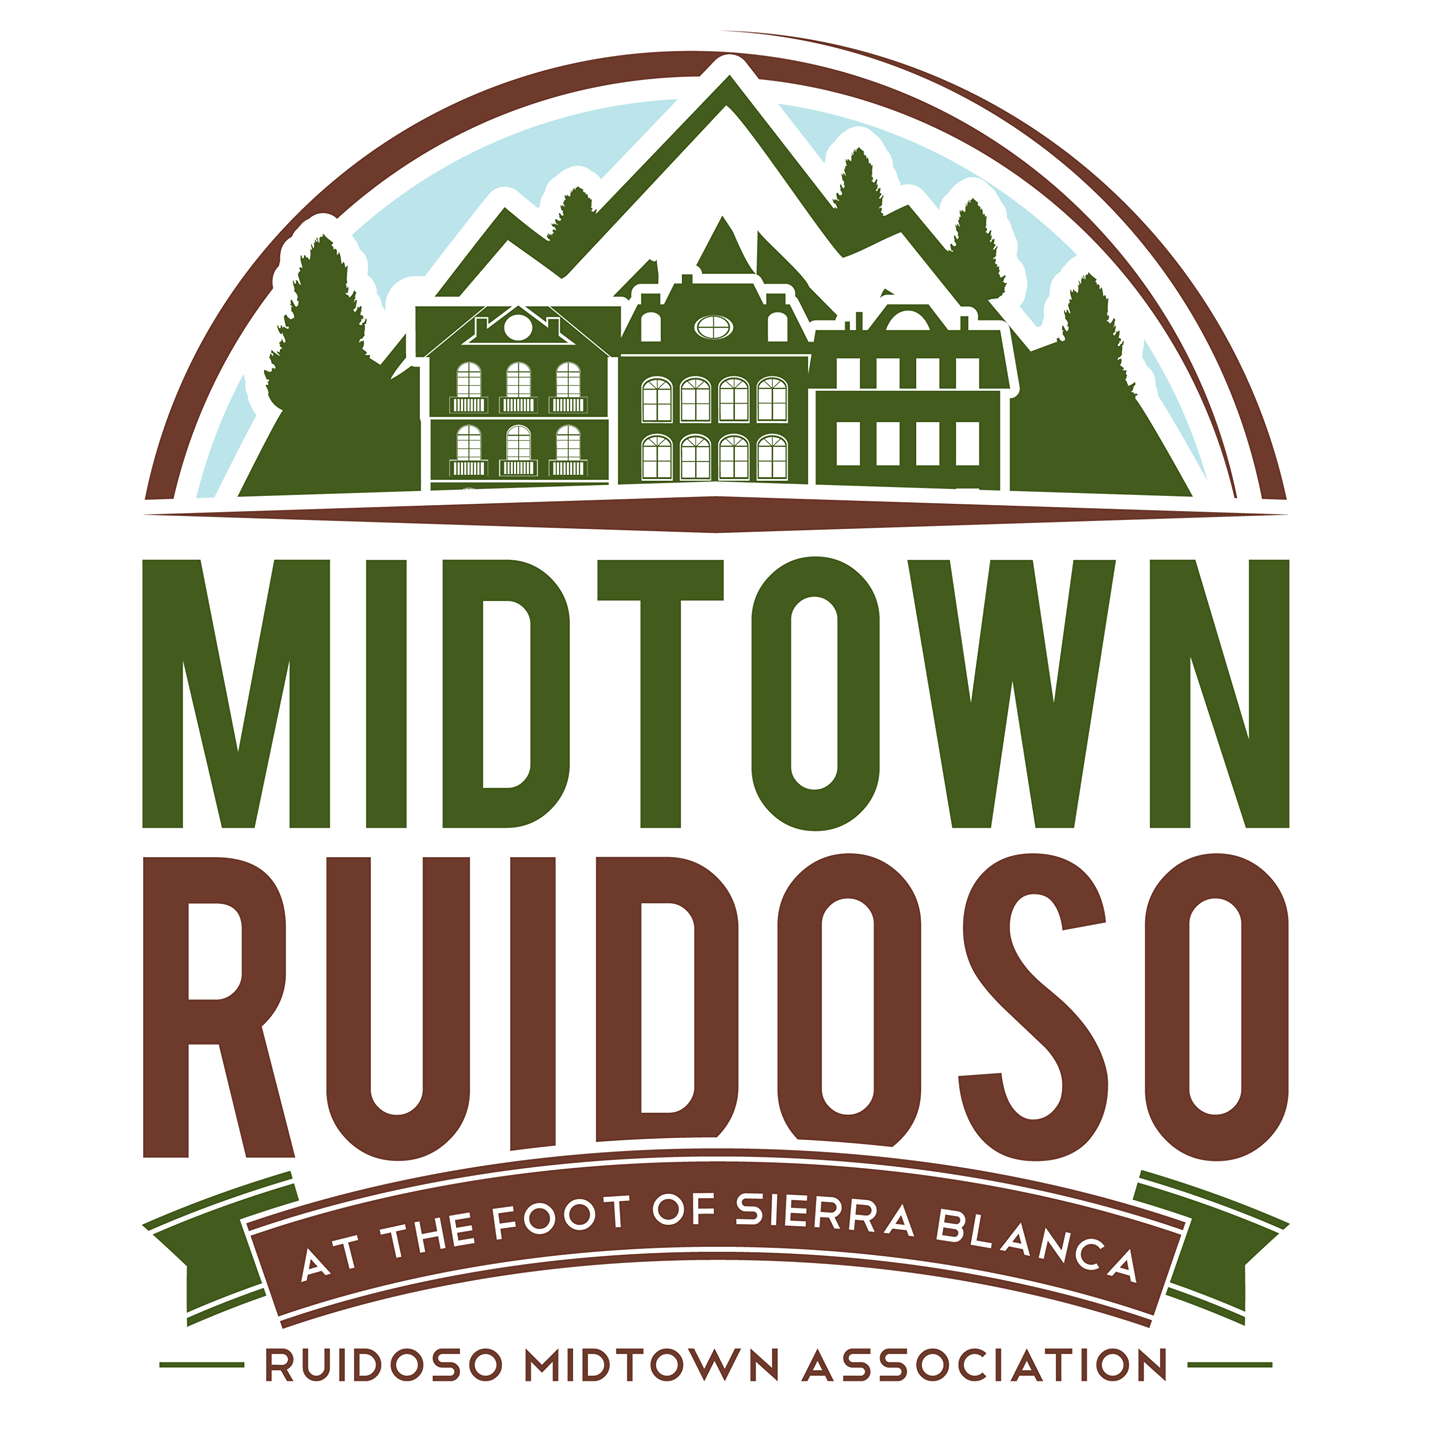 Ruidoso Midtown Association